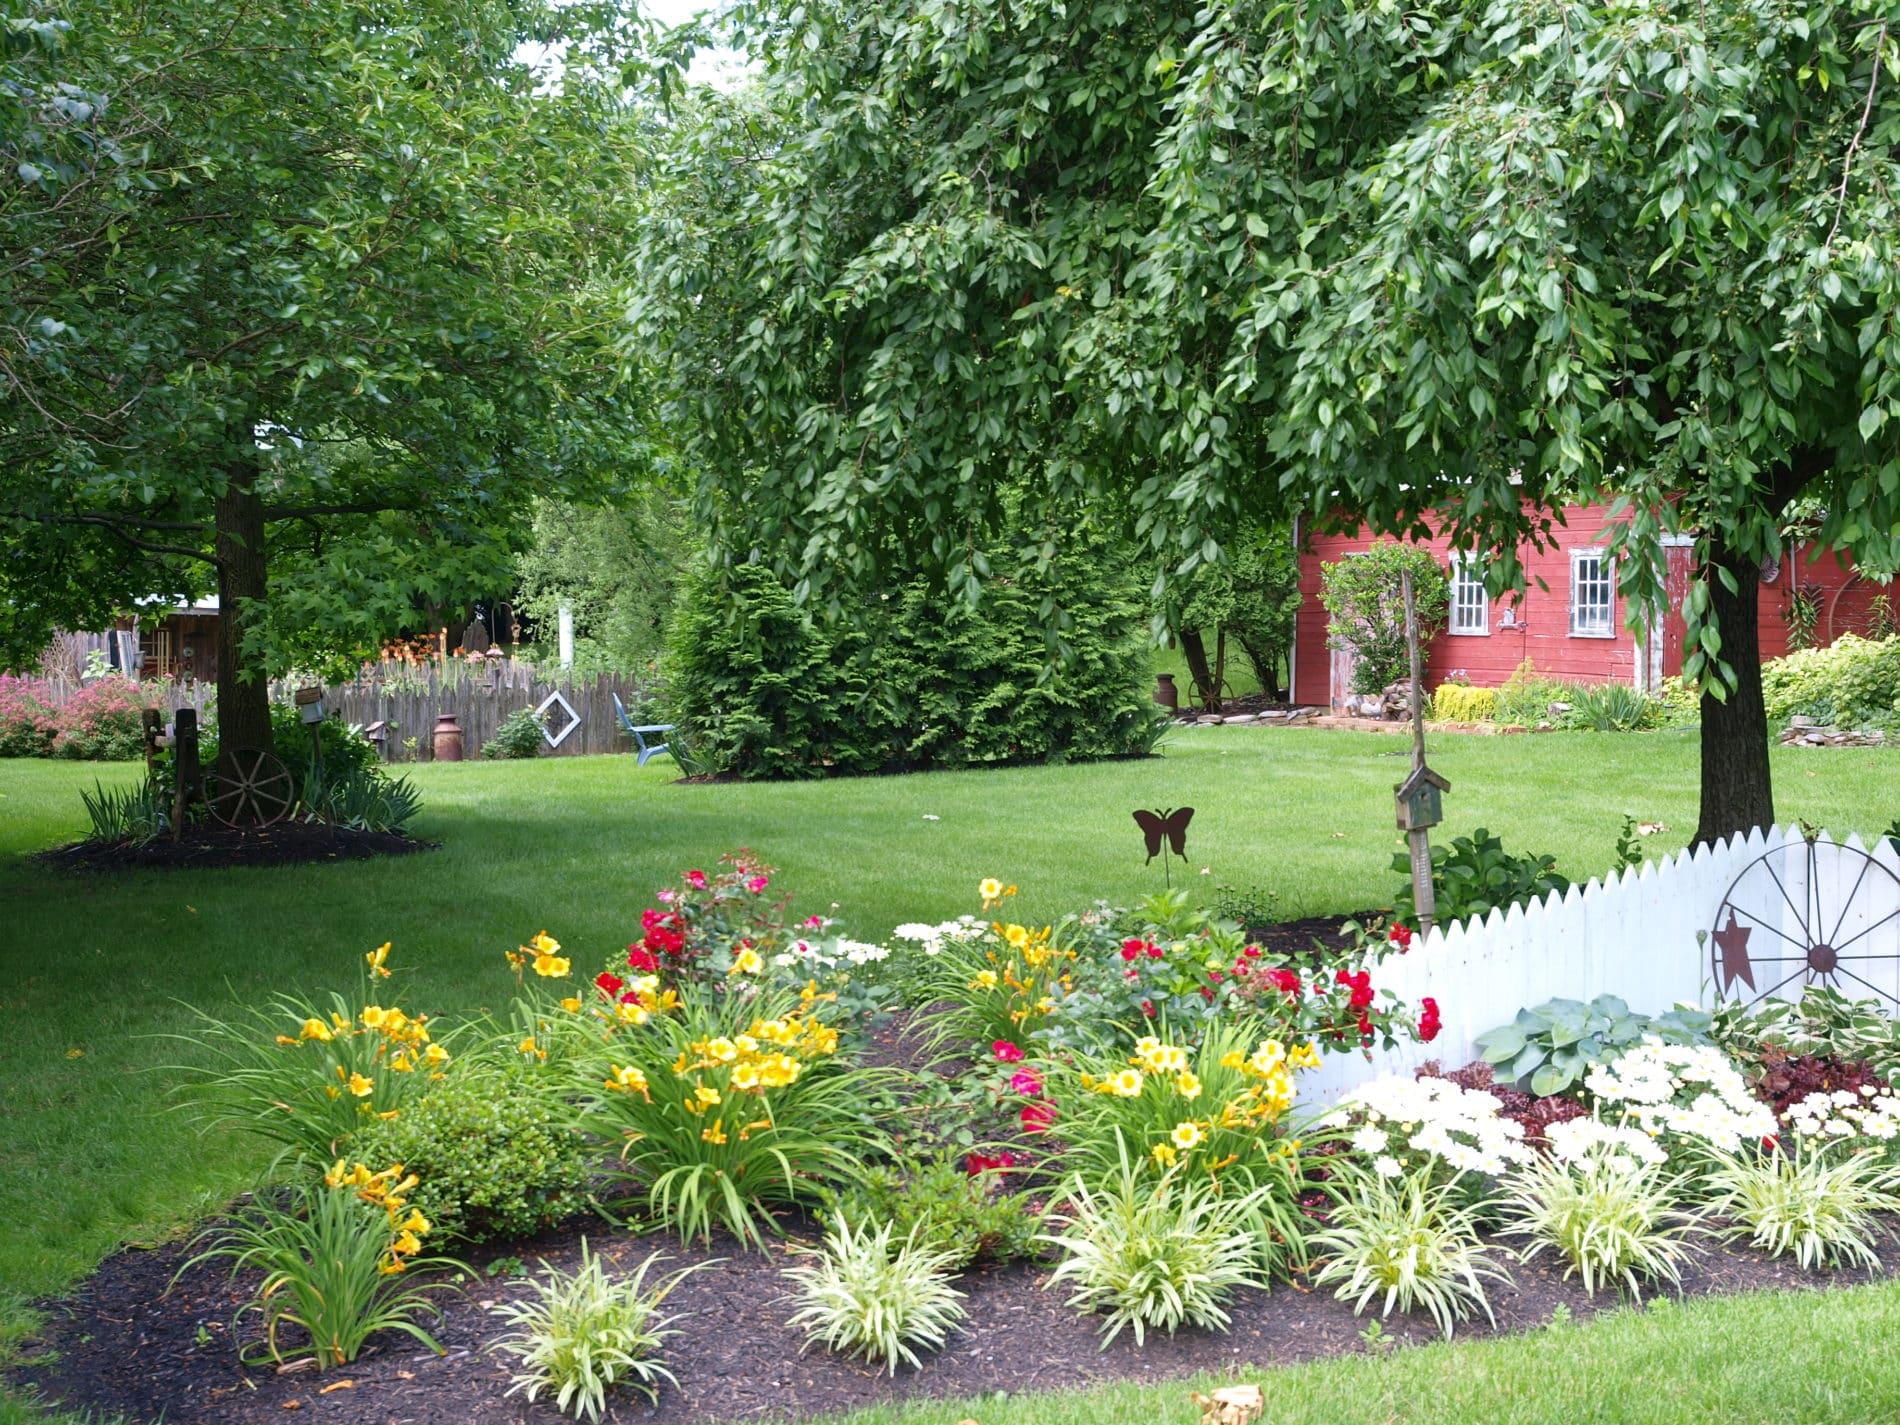 flower bed in bloom with yard and small red barn in background